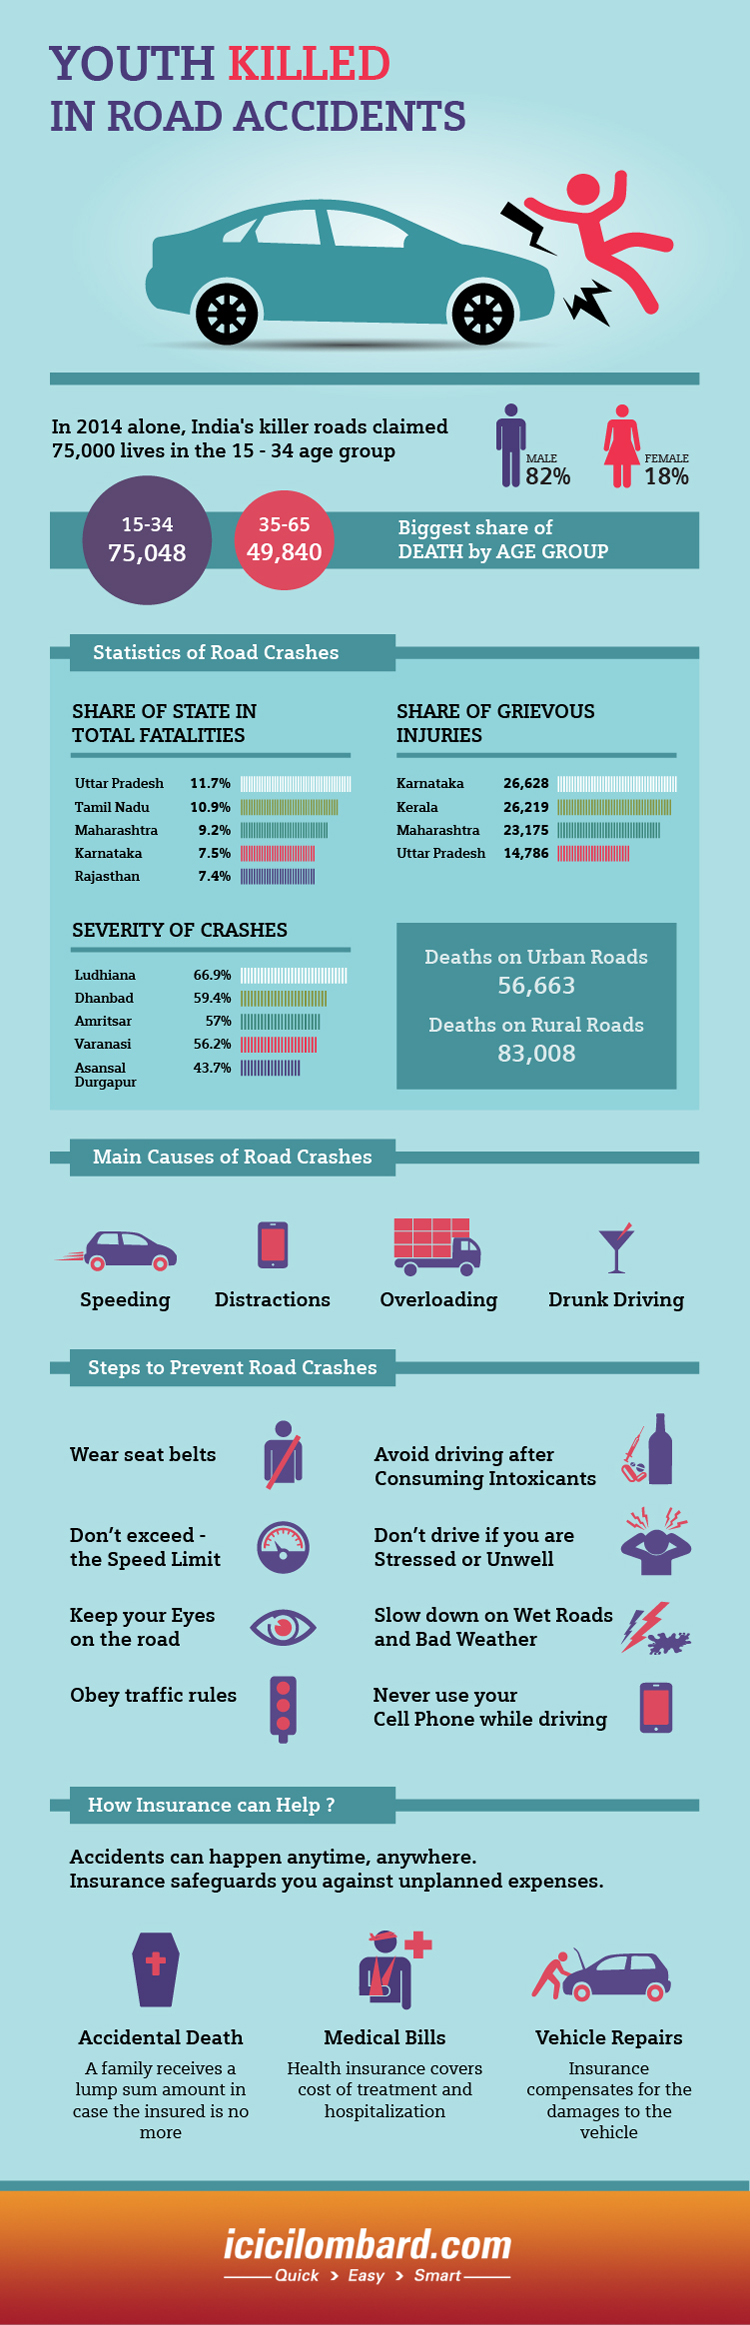 20151014-youth-killed-in-road-accidents